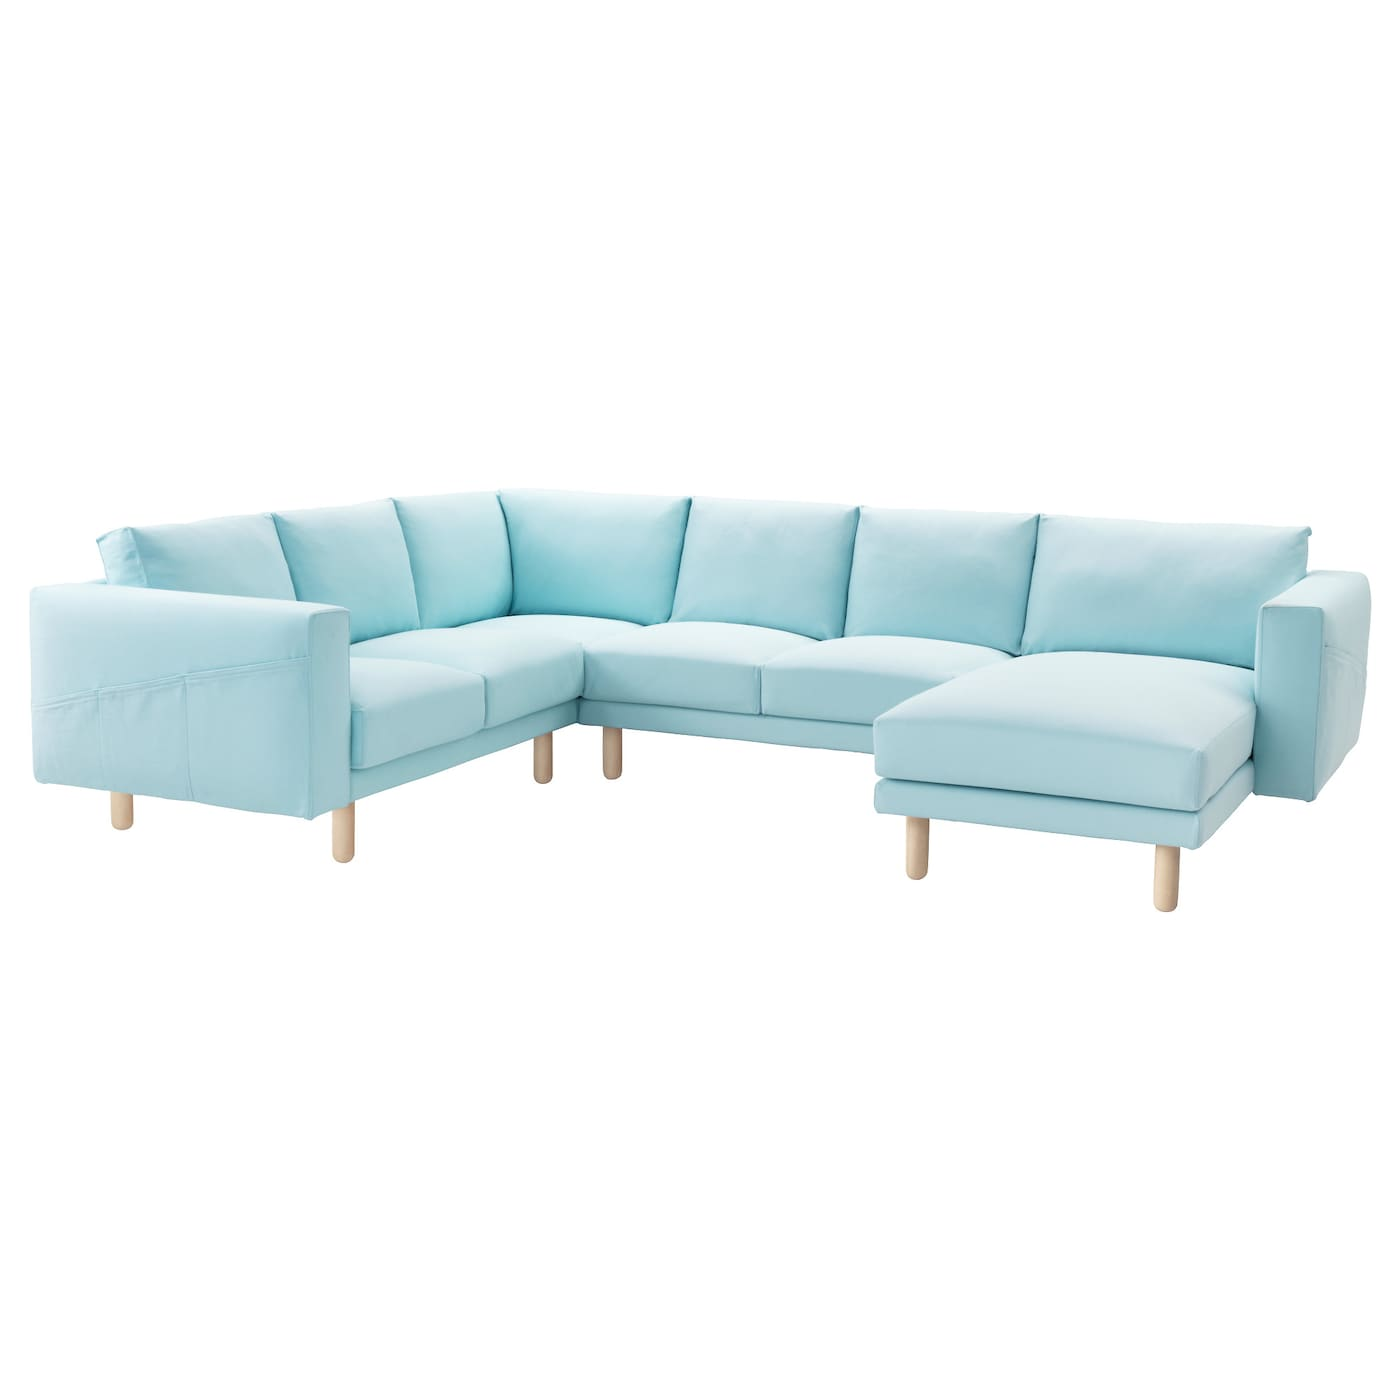 Norsborg corner sofa 2 2 with chaise longue gr sbo light for Couch with 2 chaises